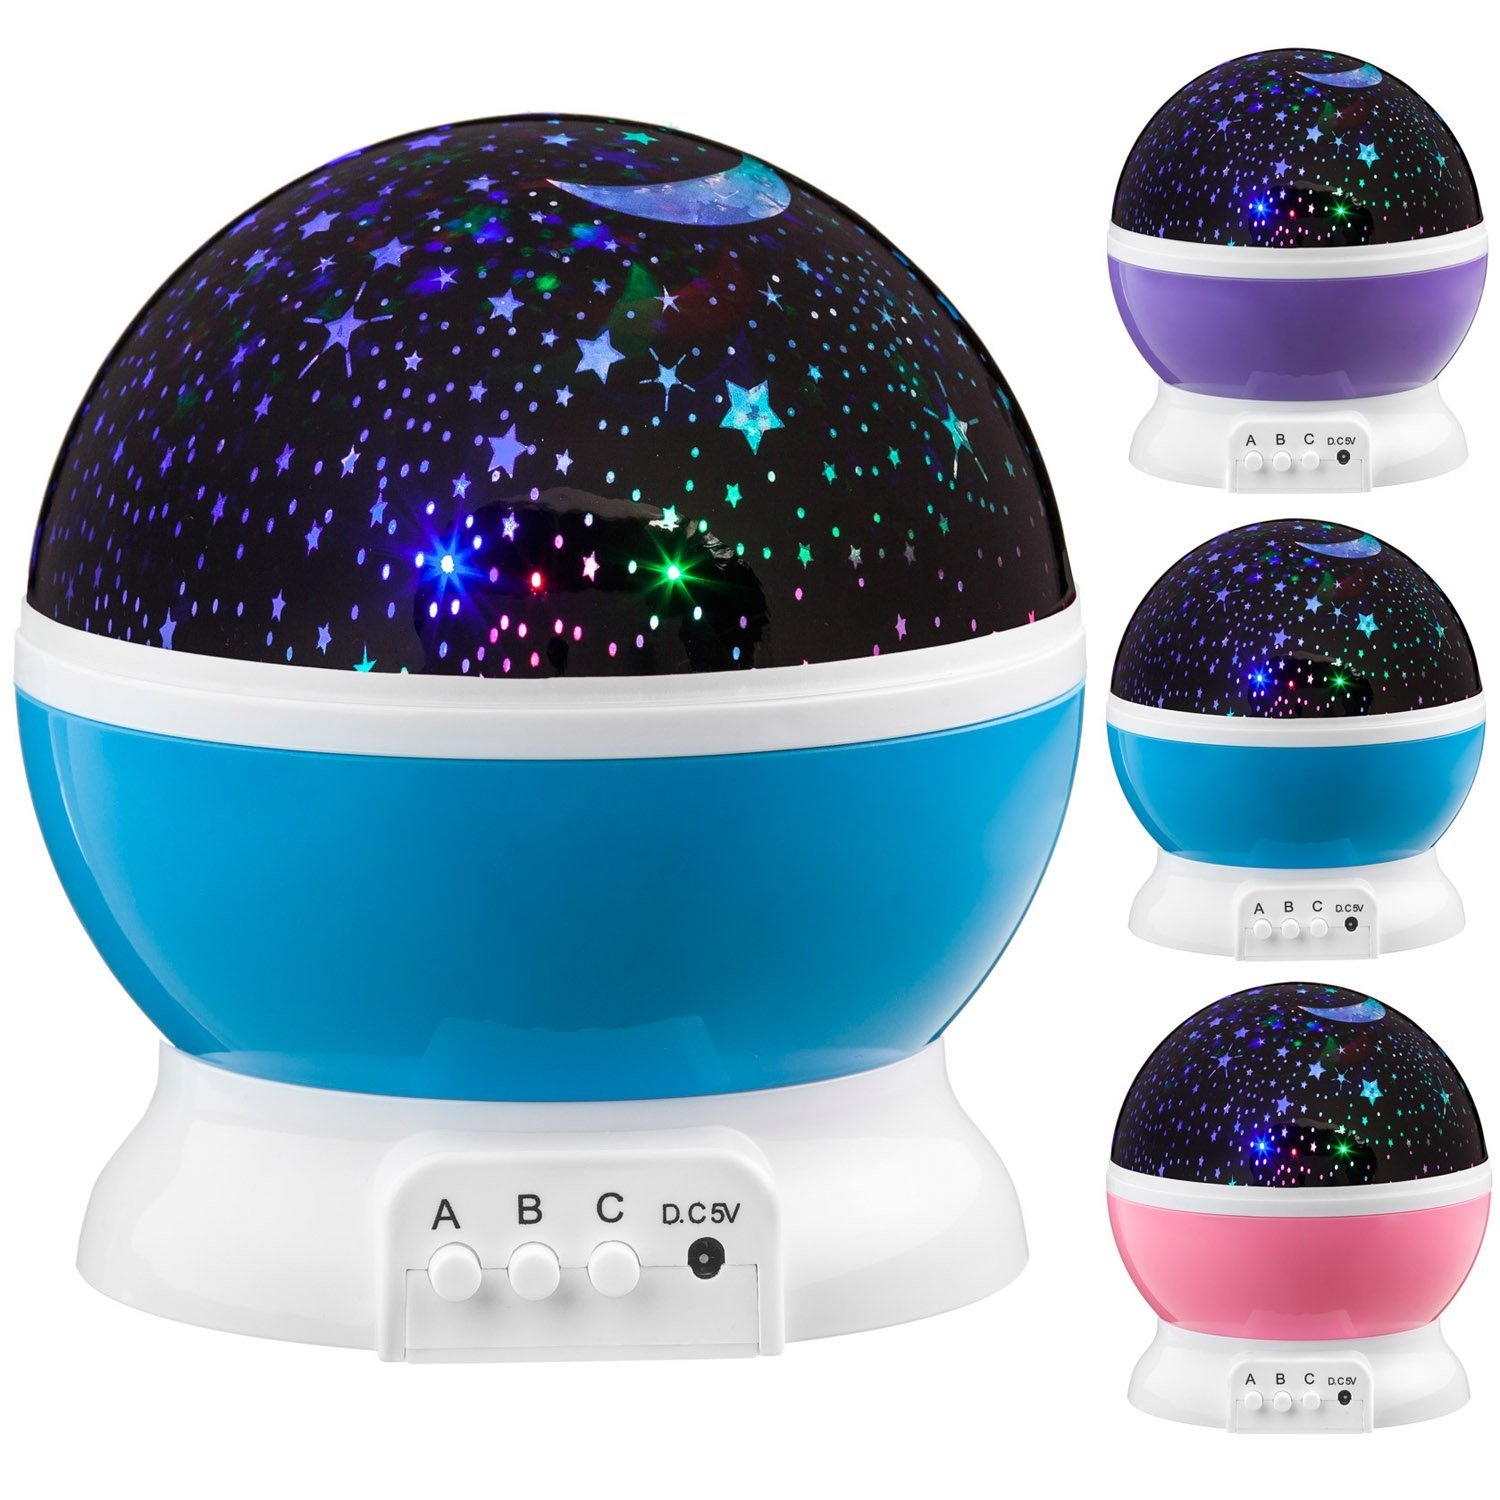 Stars Starry Sky LED Night Lighting Projector Moon Battery USB Bedroom Party Projection For Children's Night Light